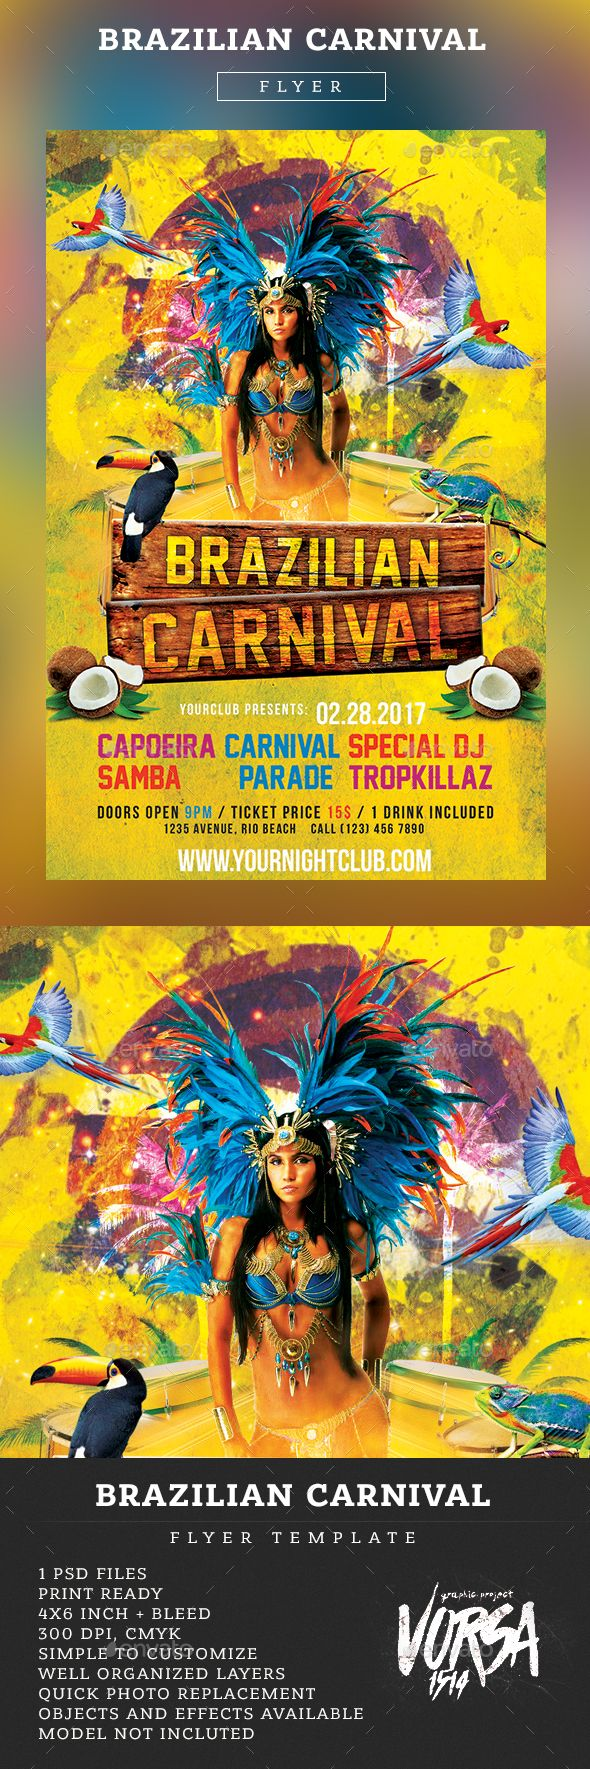 Brazilian Carnival Flyer Template - Clubs & Parties Events